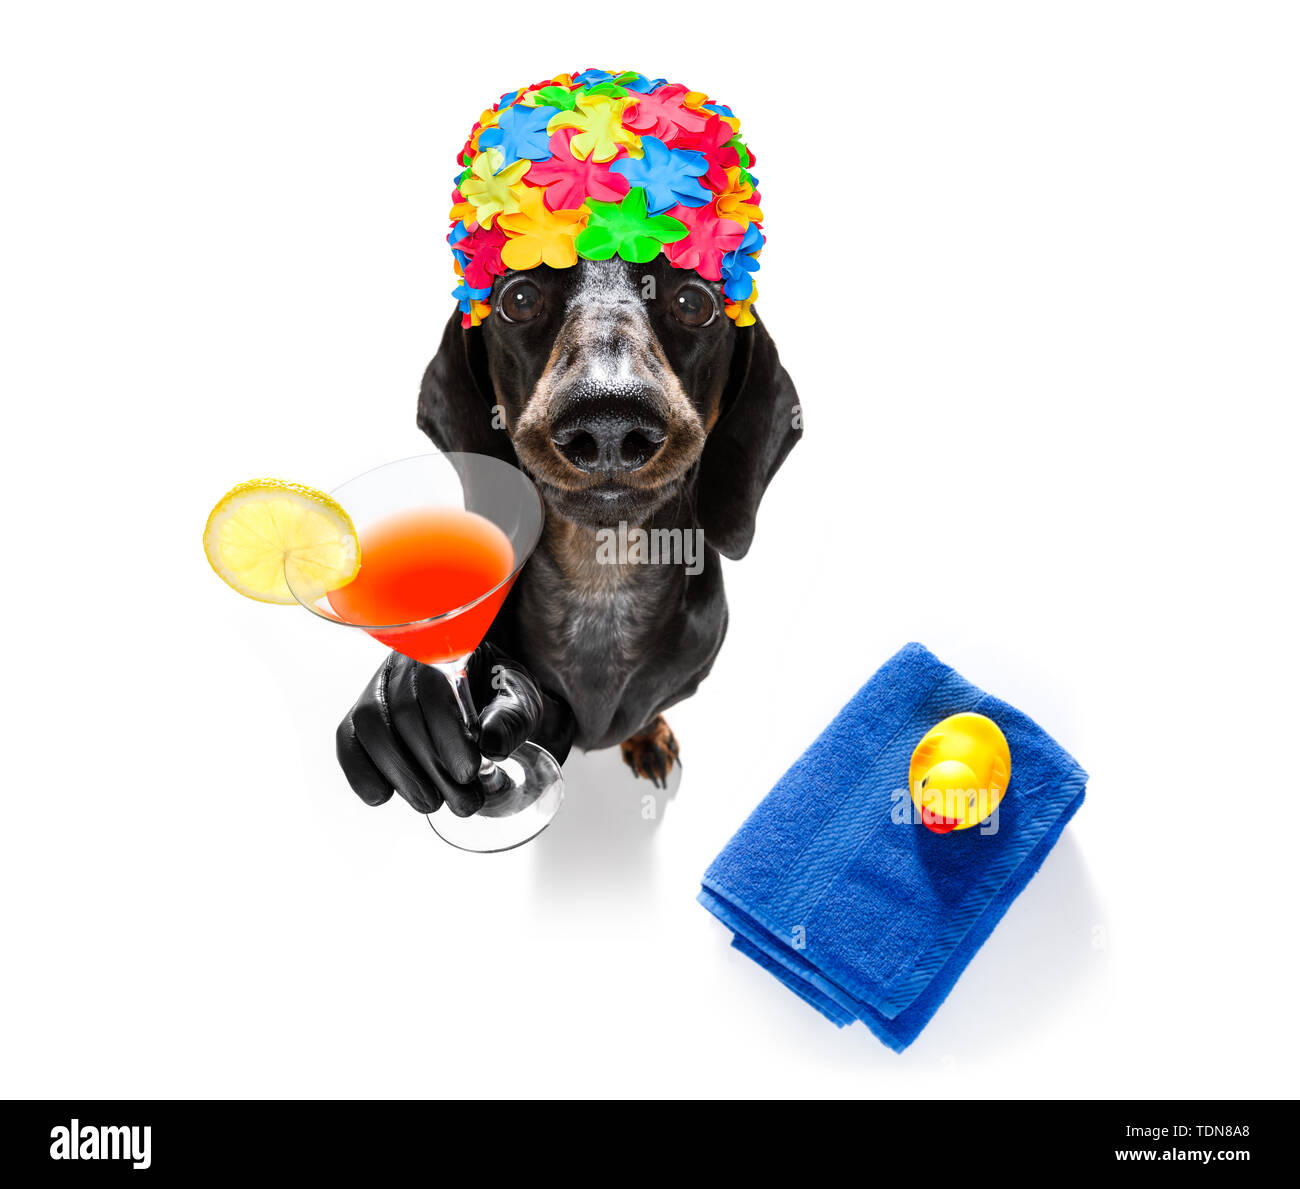 summer vacation sausage dachshund dog with rubber duck and towel wearing bath cap, isolated on white background drinking a cocktail - Stock Image